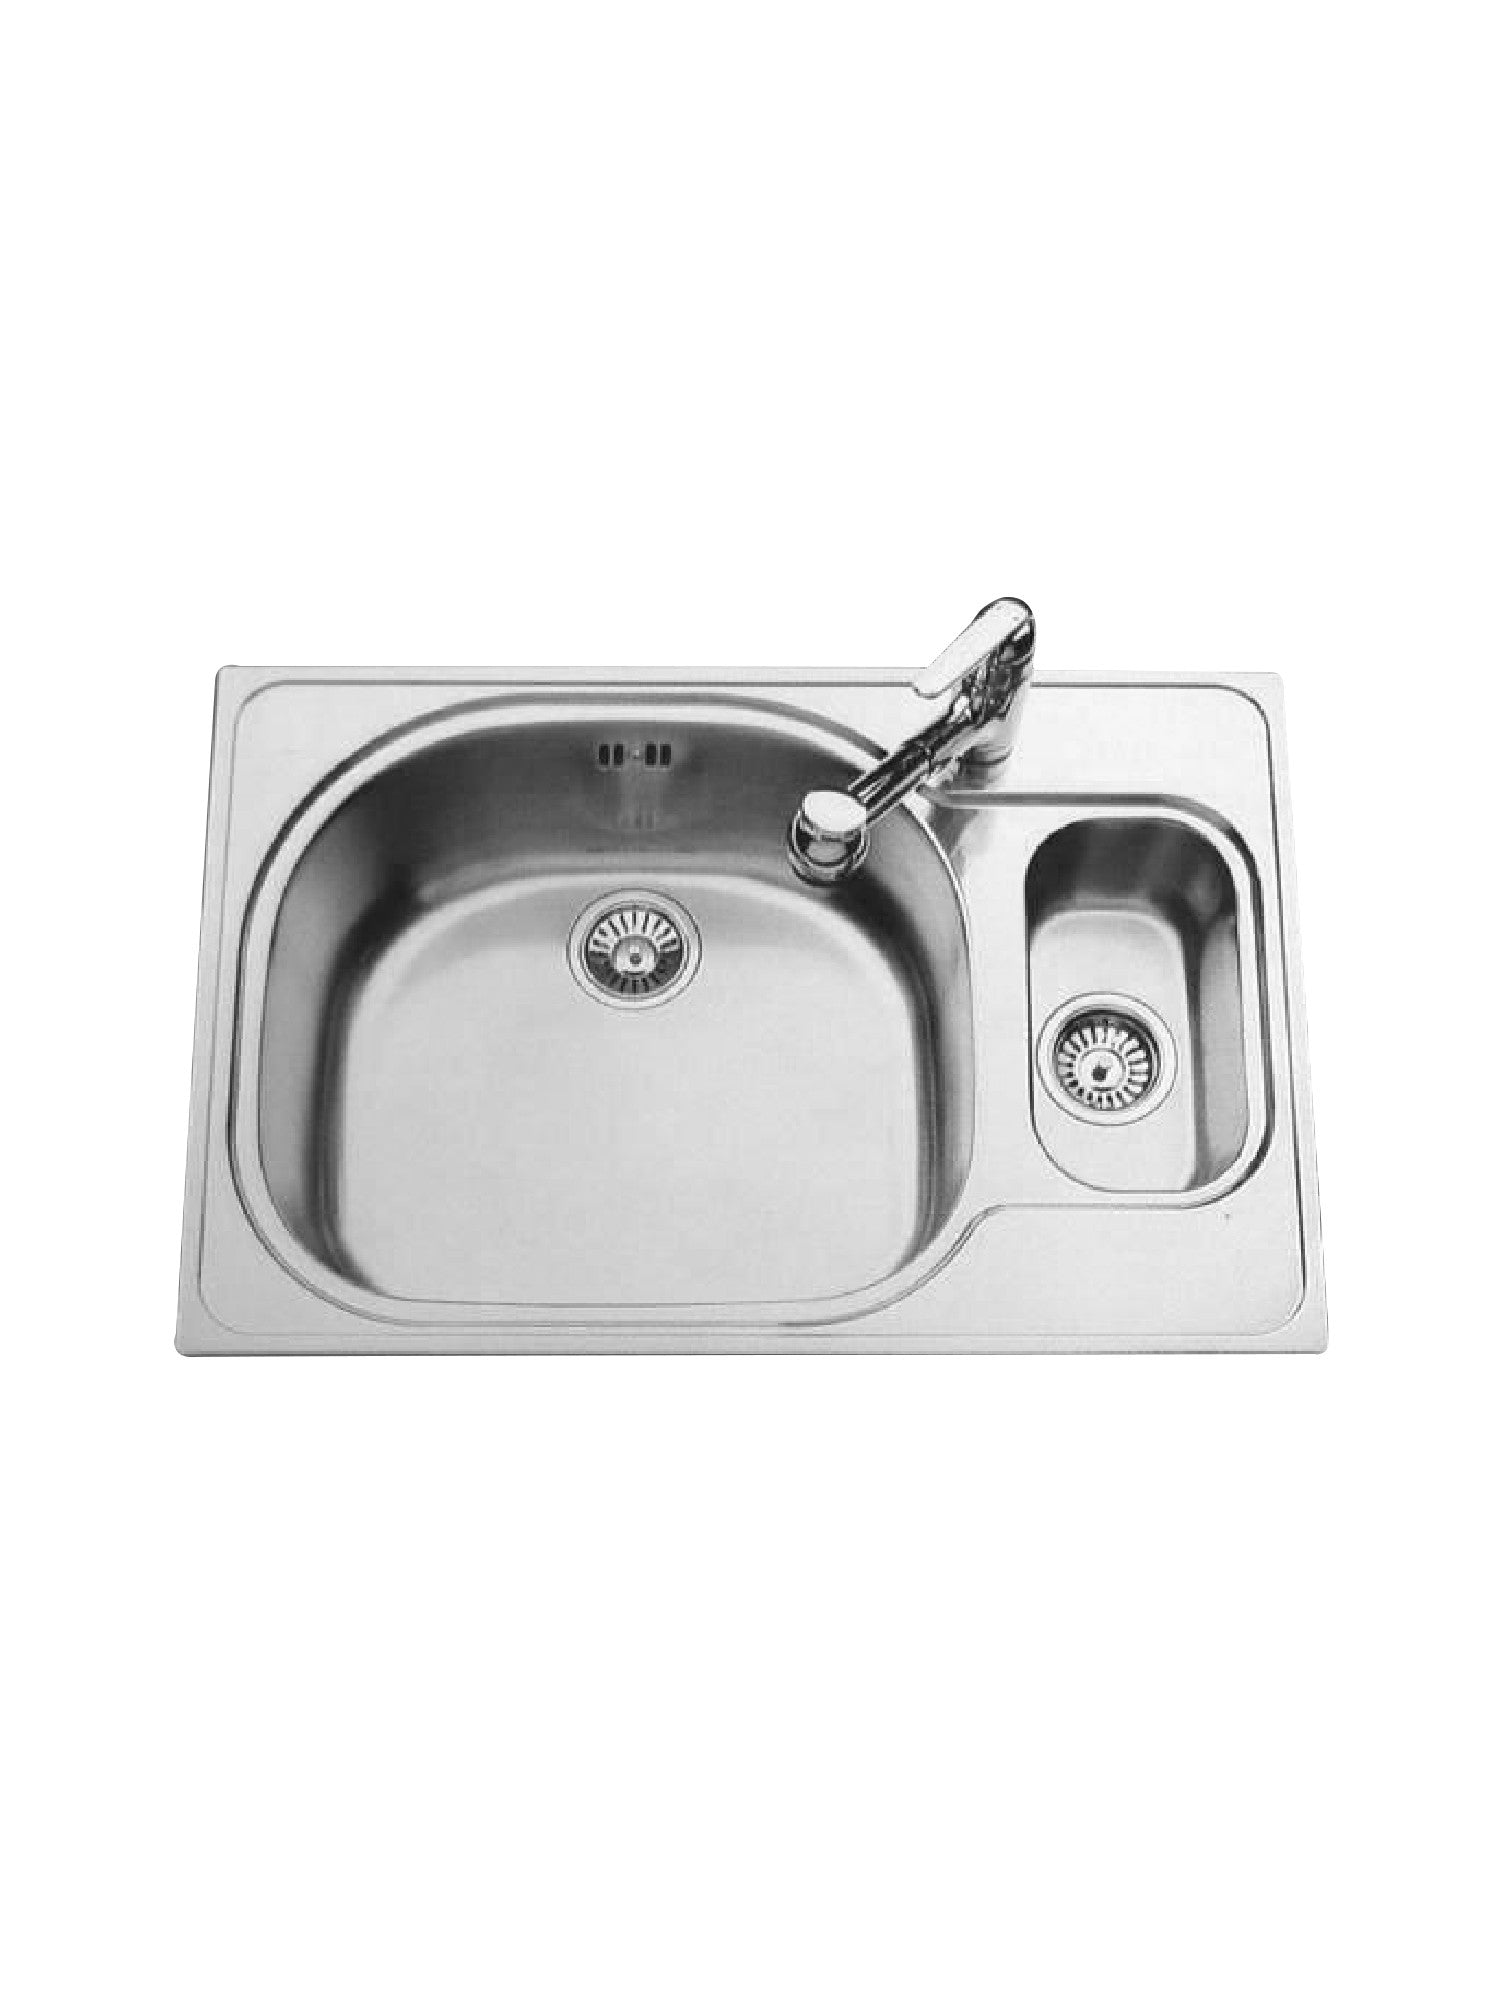 SUTER #D3 Kitchen sink